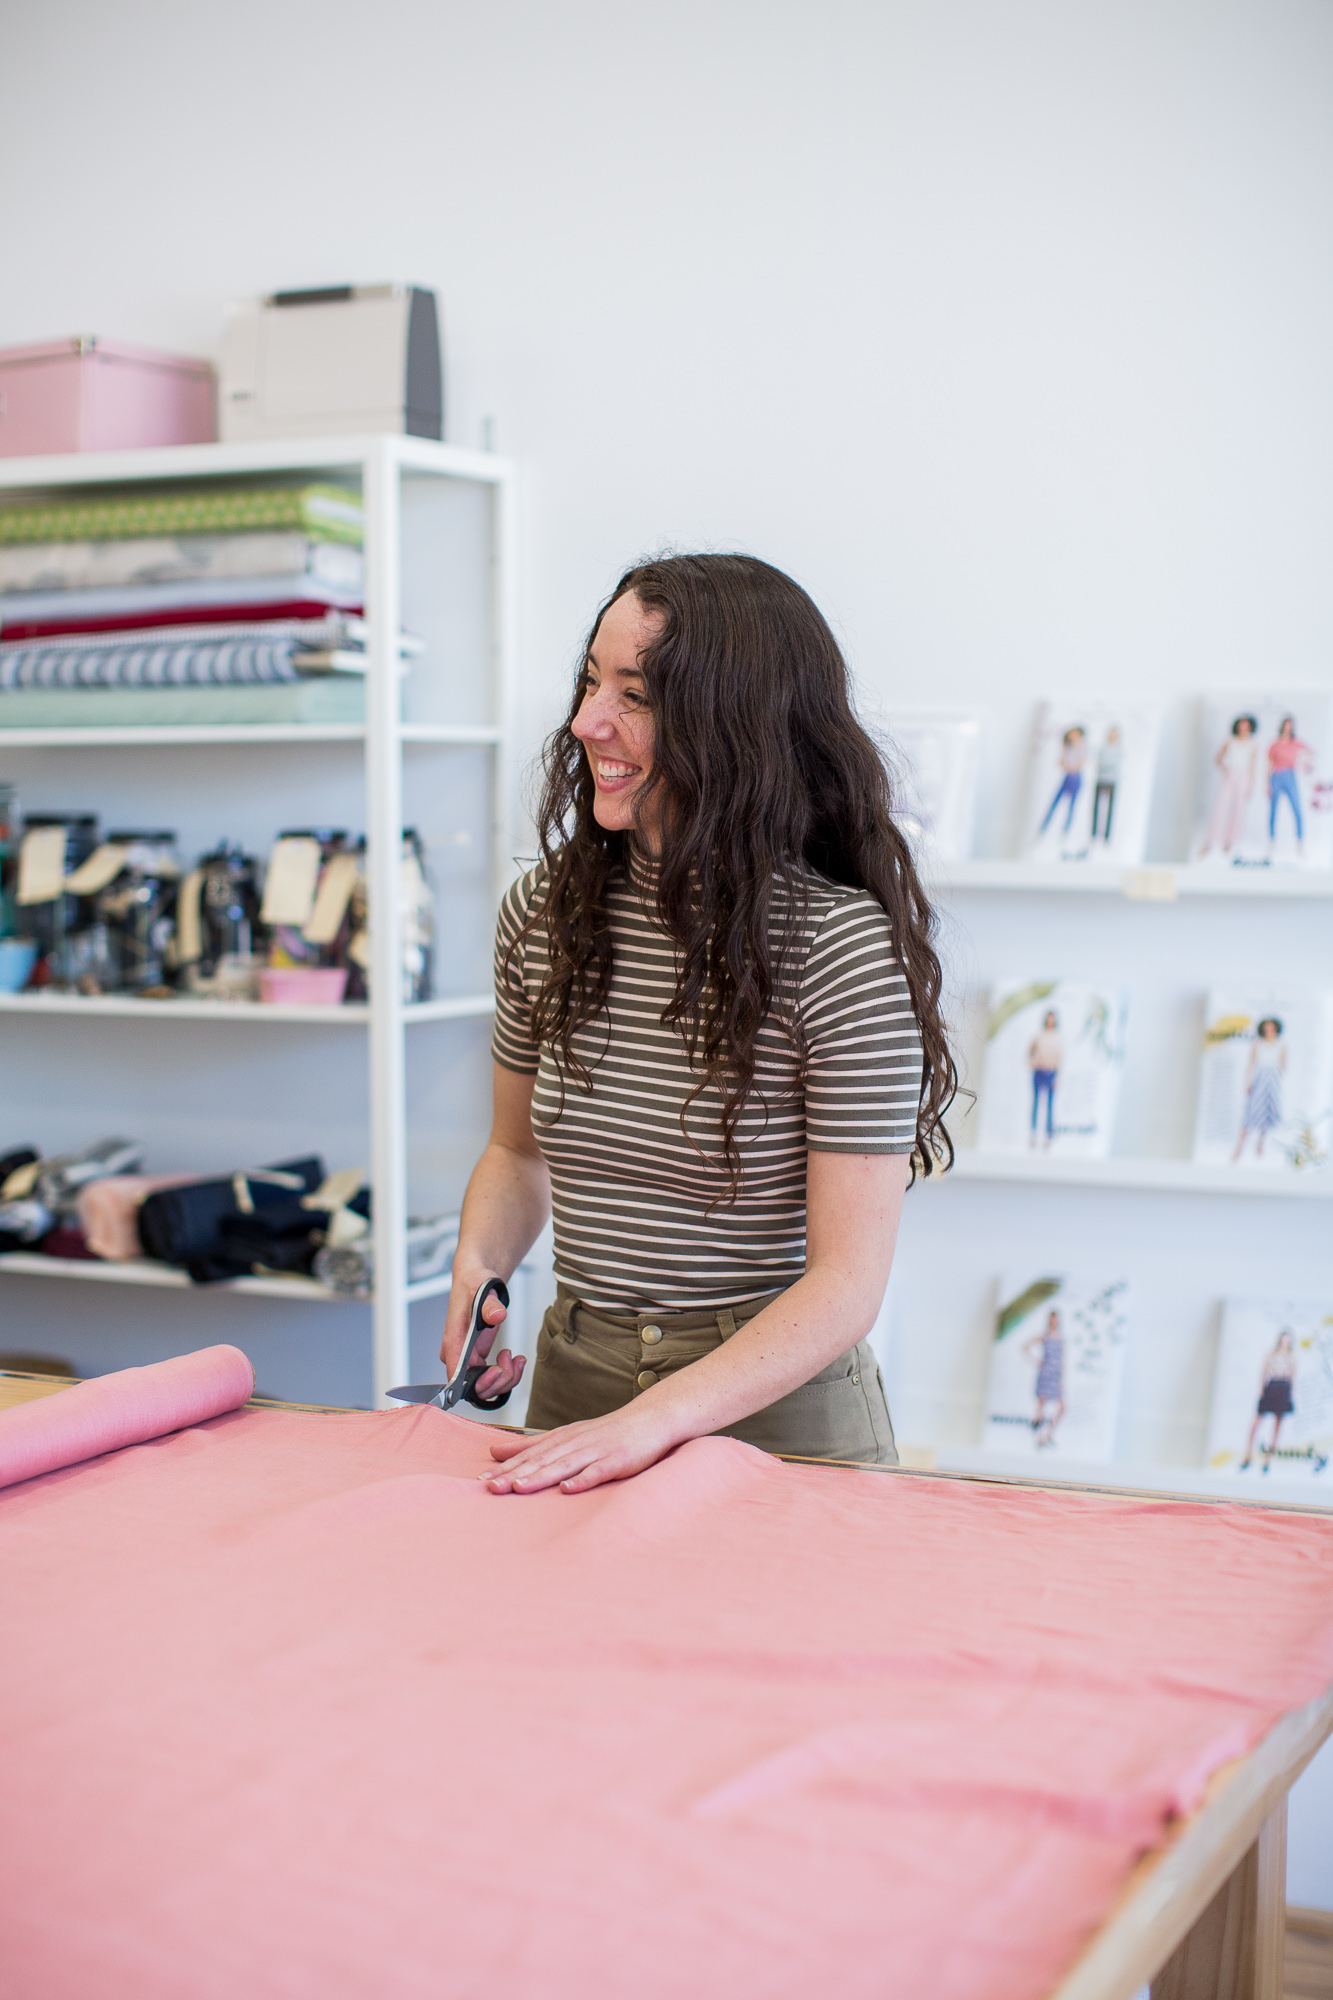 Sewing Community Project Behind the Scenes - Naomi helping everyone with their fabric & pattern choices!